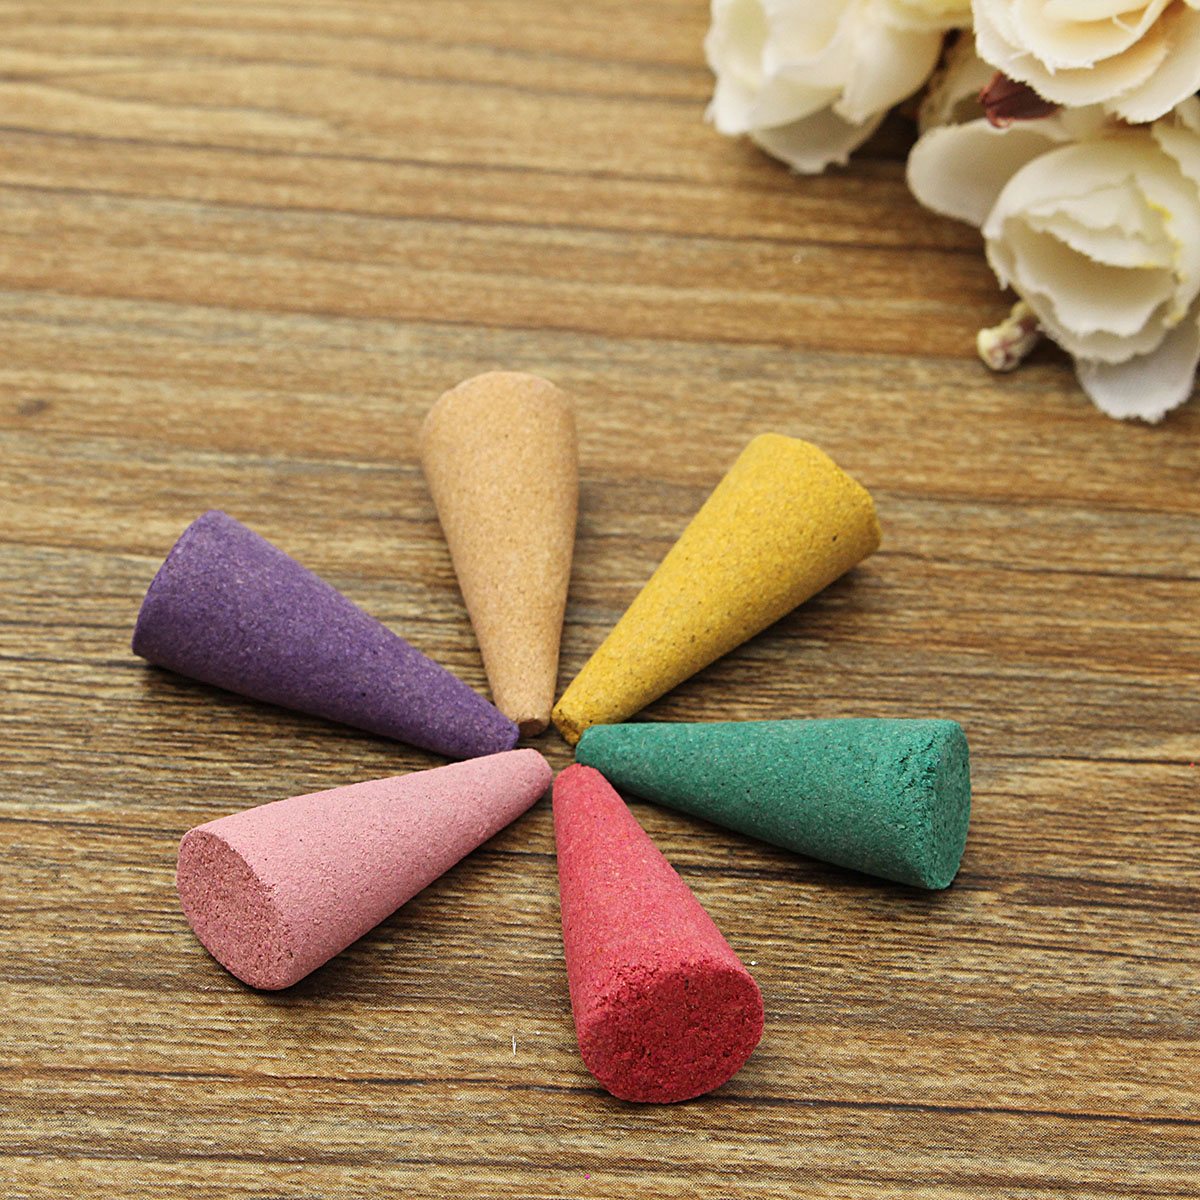 80Pcs/Box Natural Backflow Incense Cones Mix Fragrance Relax Burner Aromatherapy Tower Incense